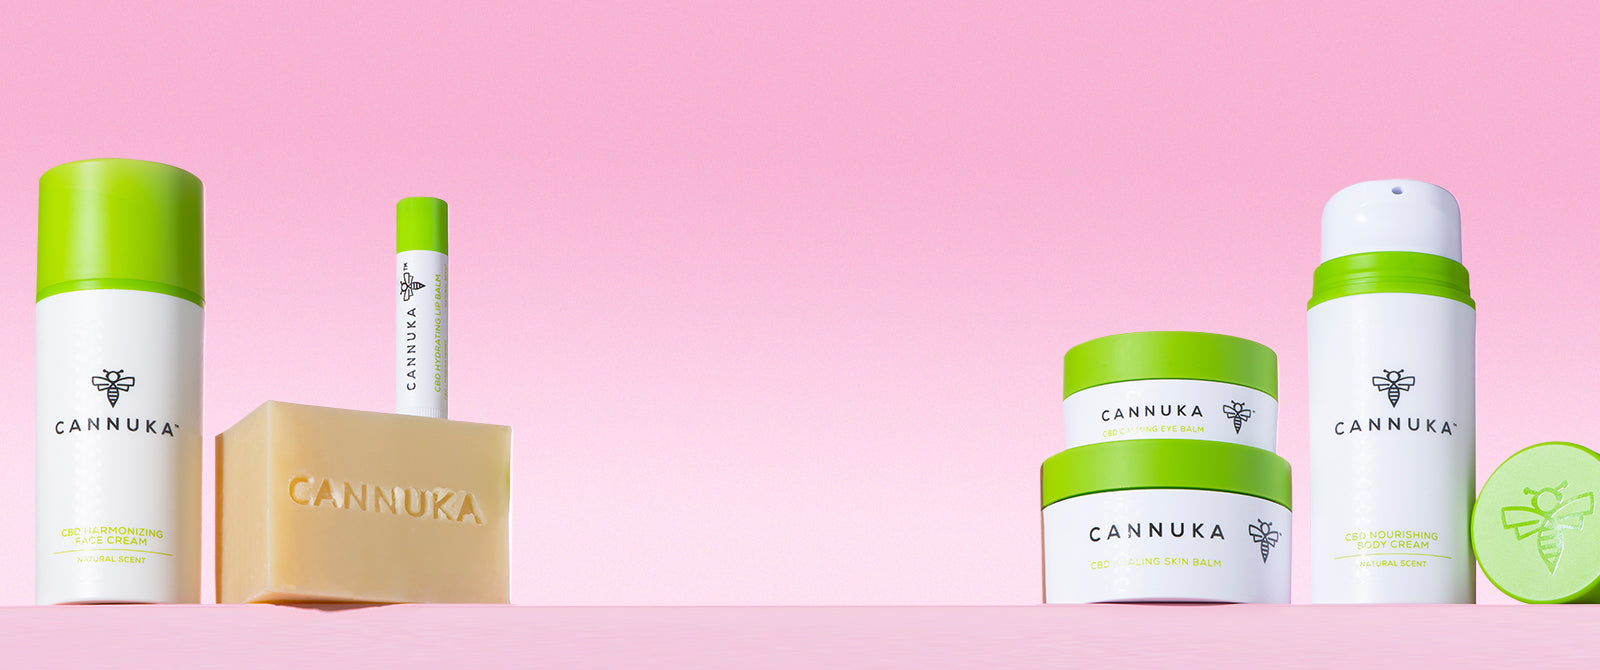 Cannuka CBD and Manuka Honey Skincare Product Lineup